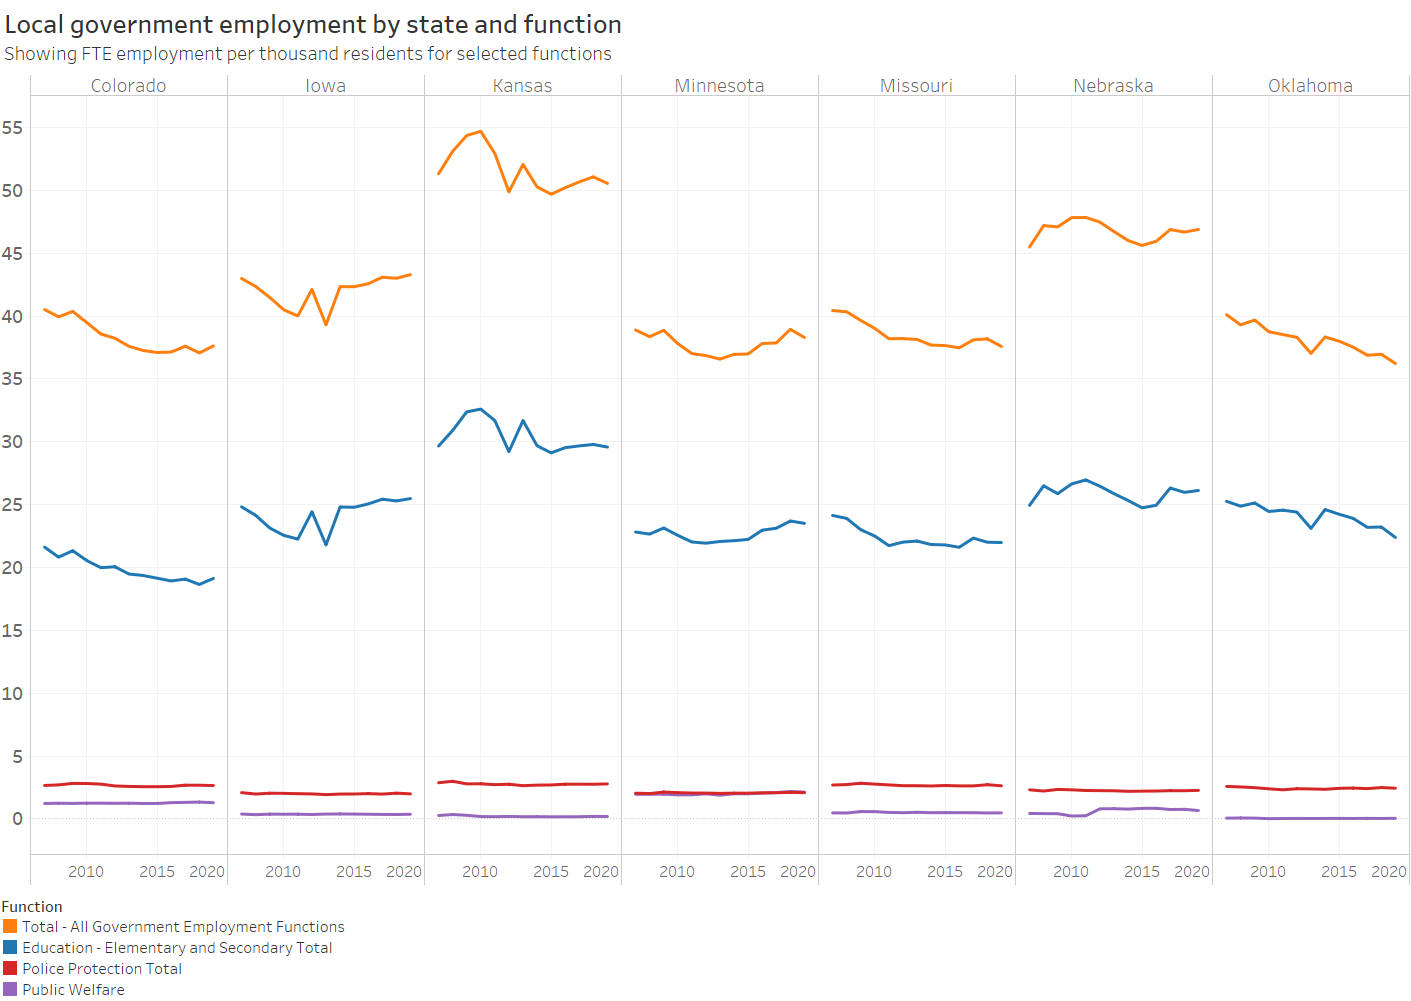 Local government employment in Kansas